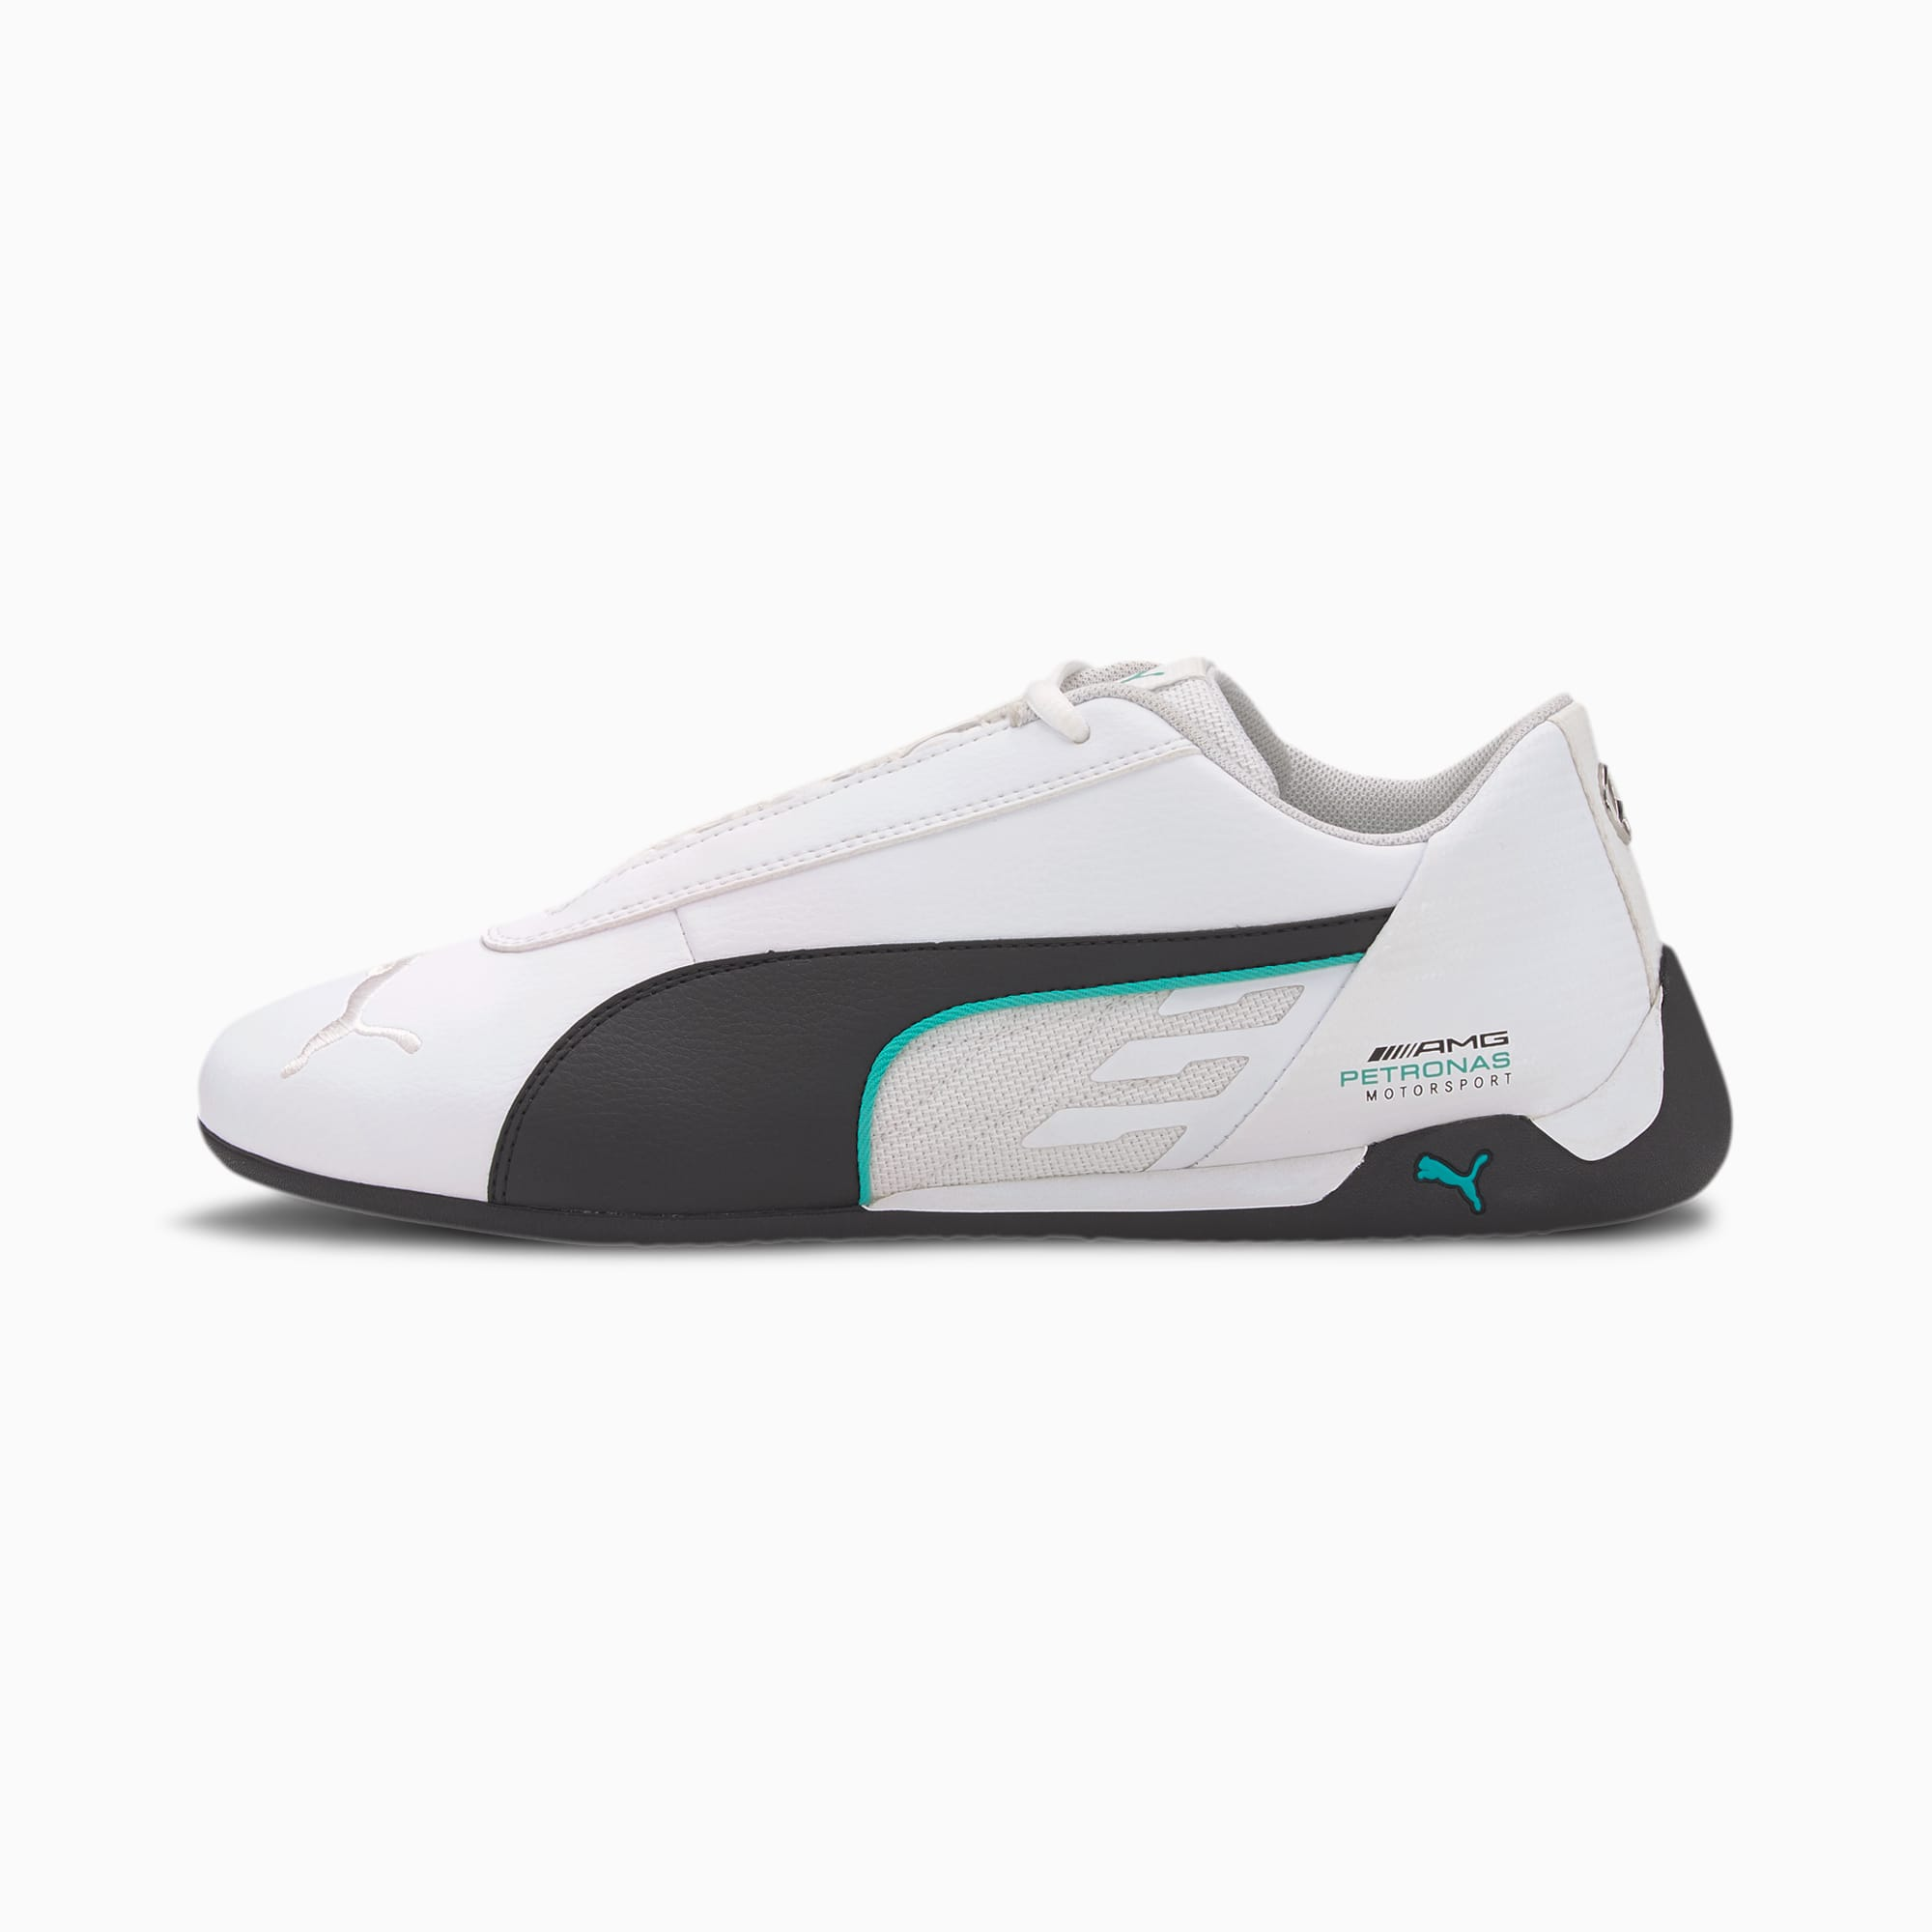 puma shoes motorsport